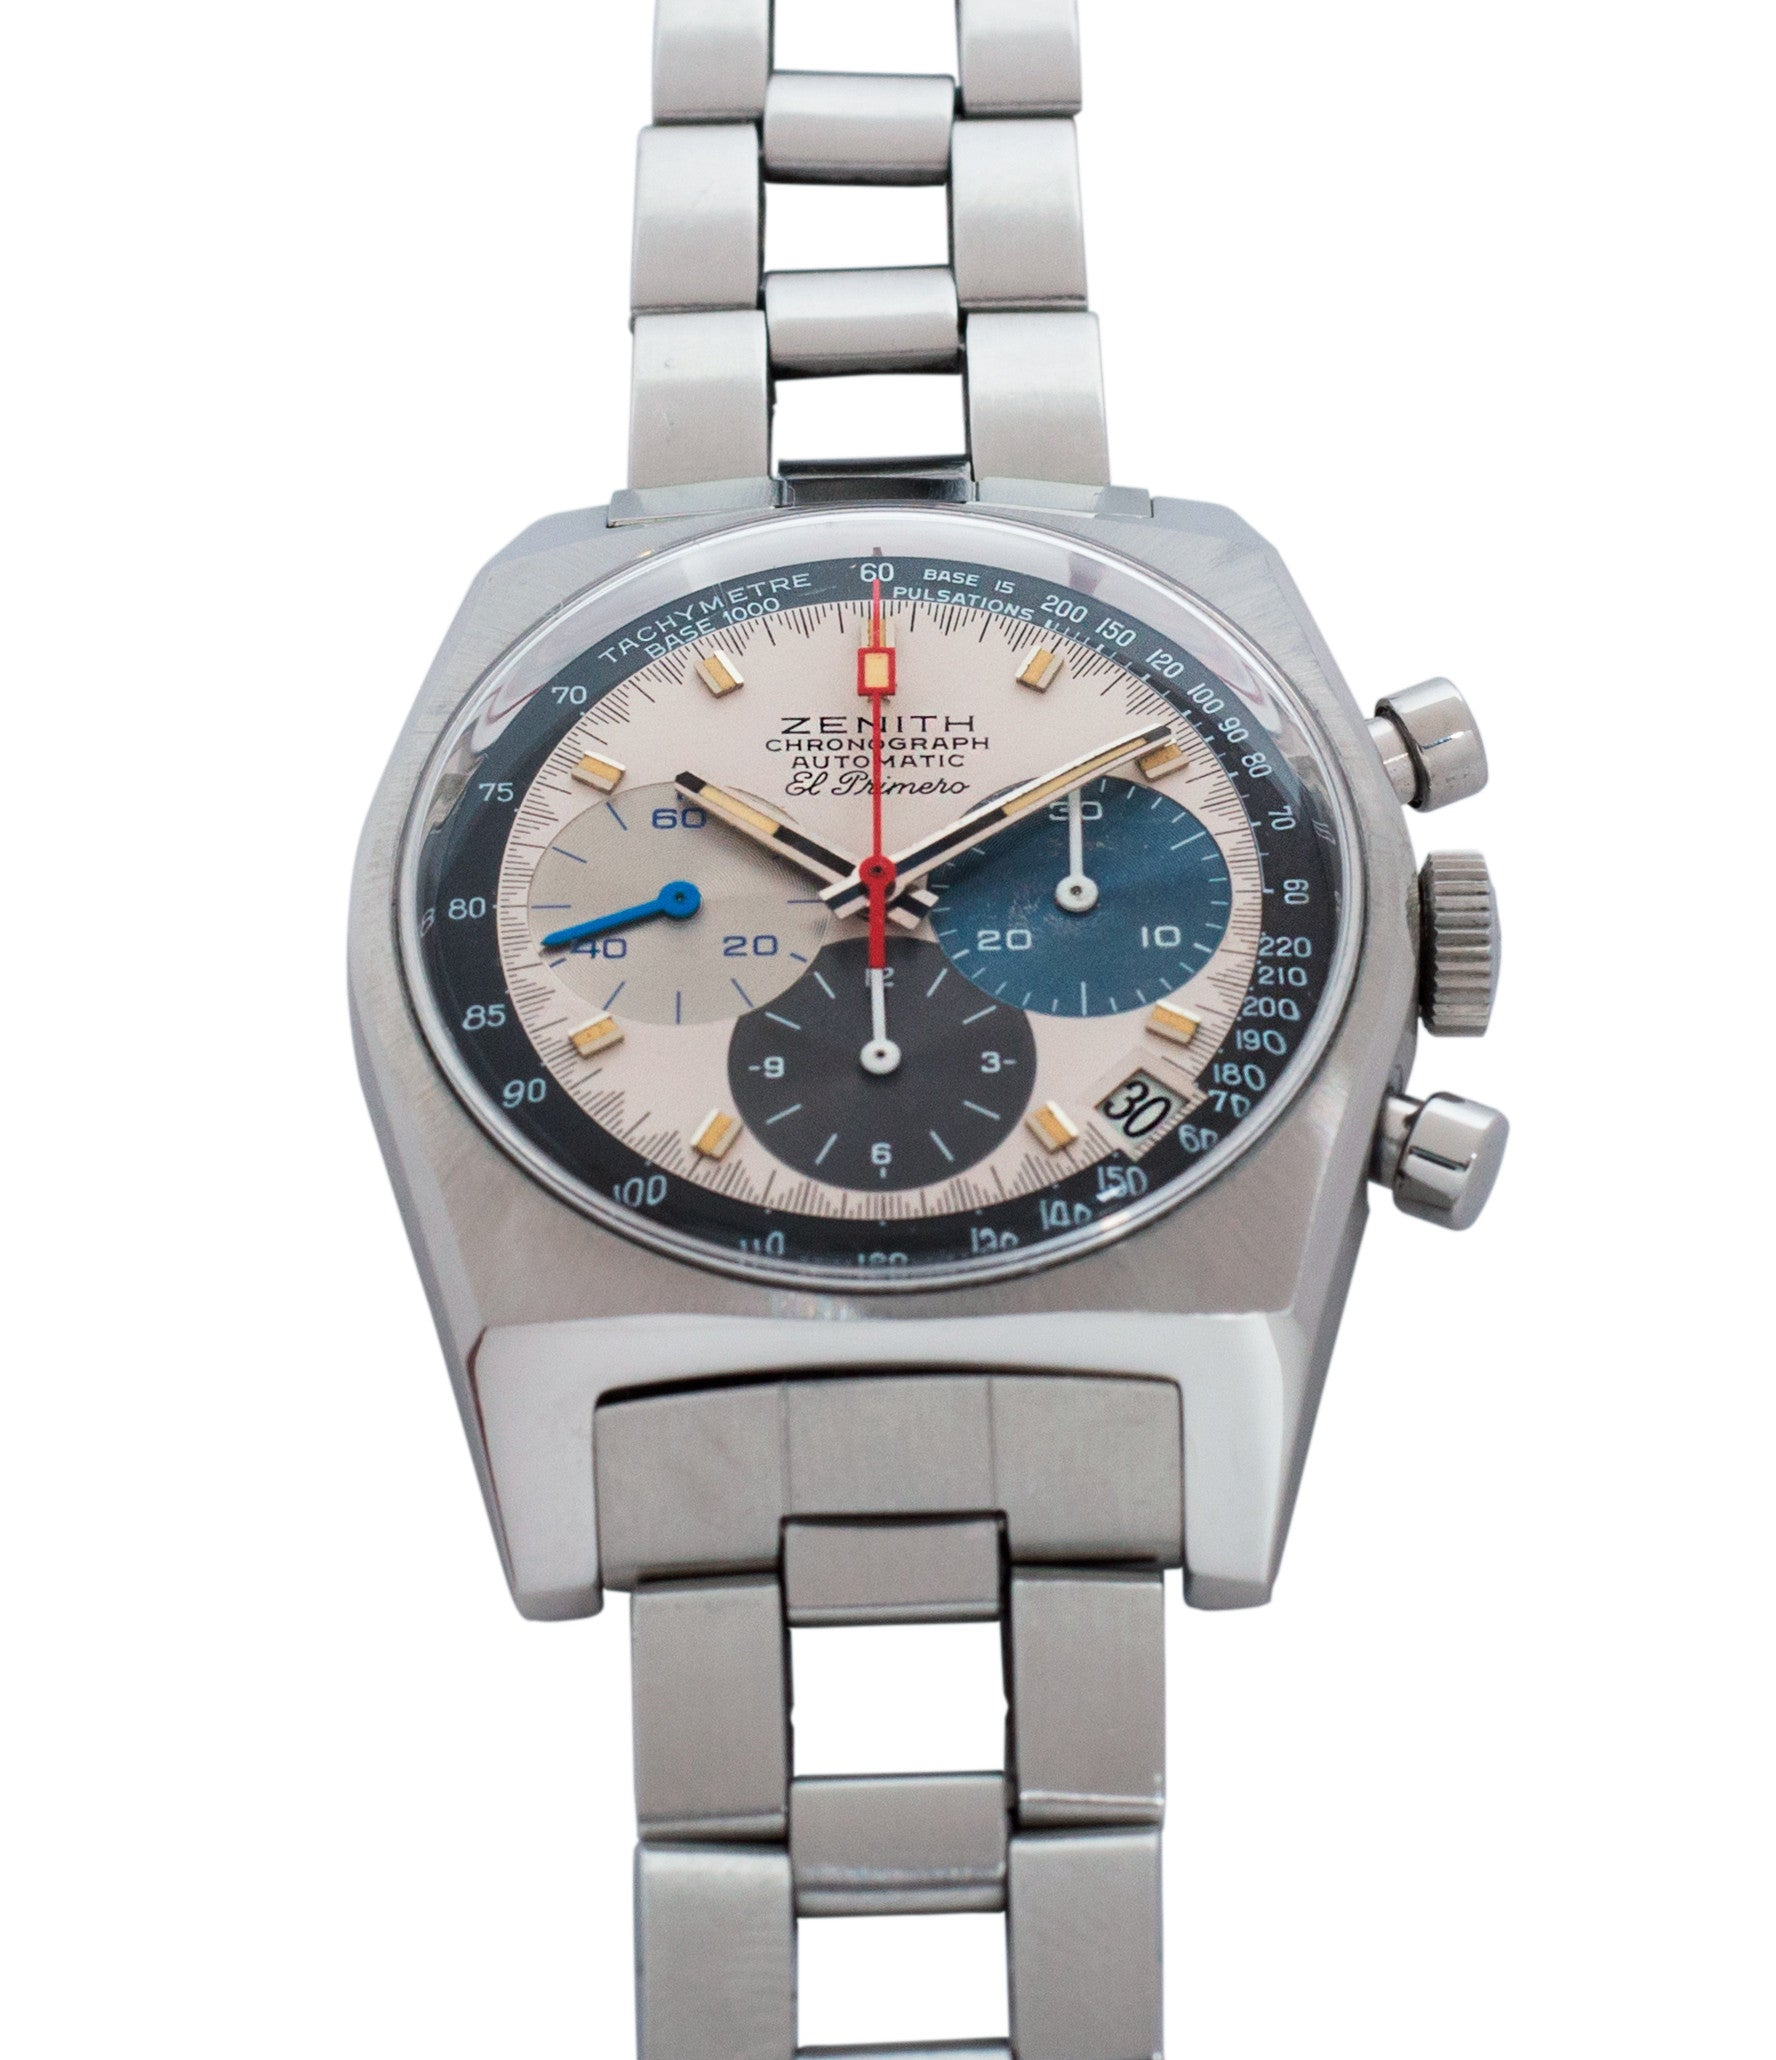 selling Zenith El Primero A3817 steel automatic chronograph vintage watch for sale online at A Collected Man vintage rare watch specialist